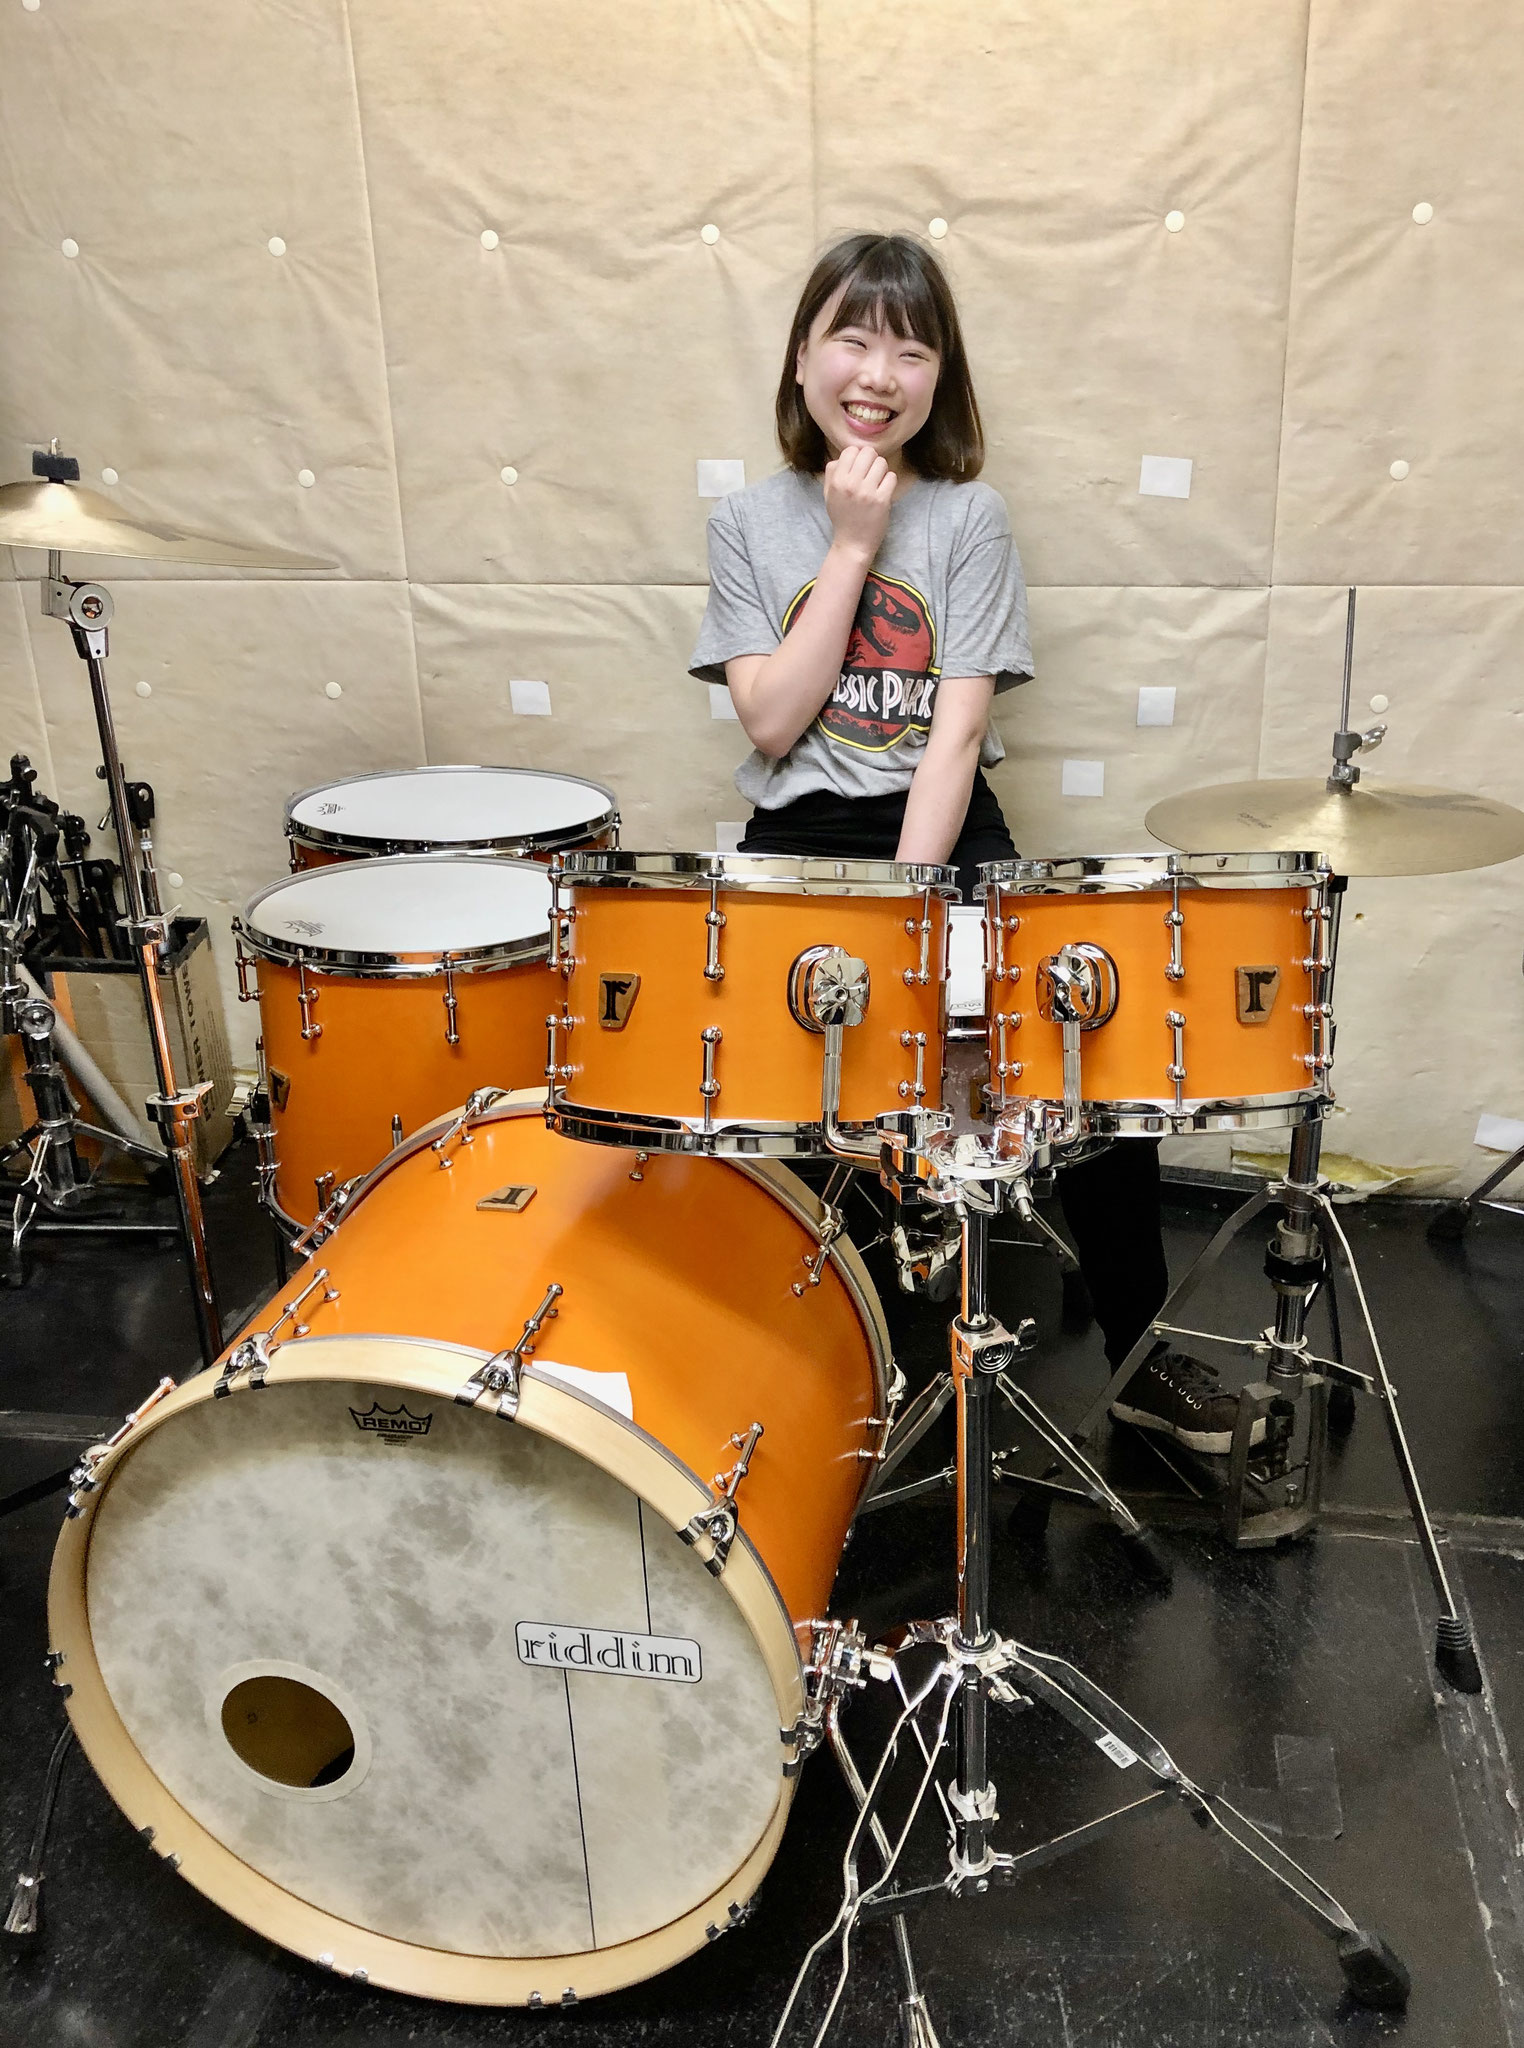 "山本真綺  Custom. Maple 10ply / 22""x17"" BD , Maple 8ply / 10""x7.5"" , 12""x8"" TT , 14""x13"" , 16""x15"" FT , #16. Birch 8ply / 14""x5.75"" SD , #11. Maple 10ply / 14""x5.75"" SD"